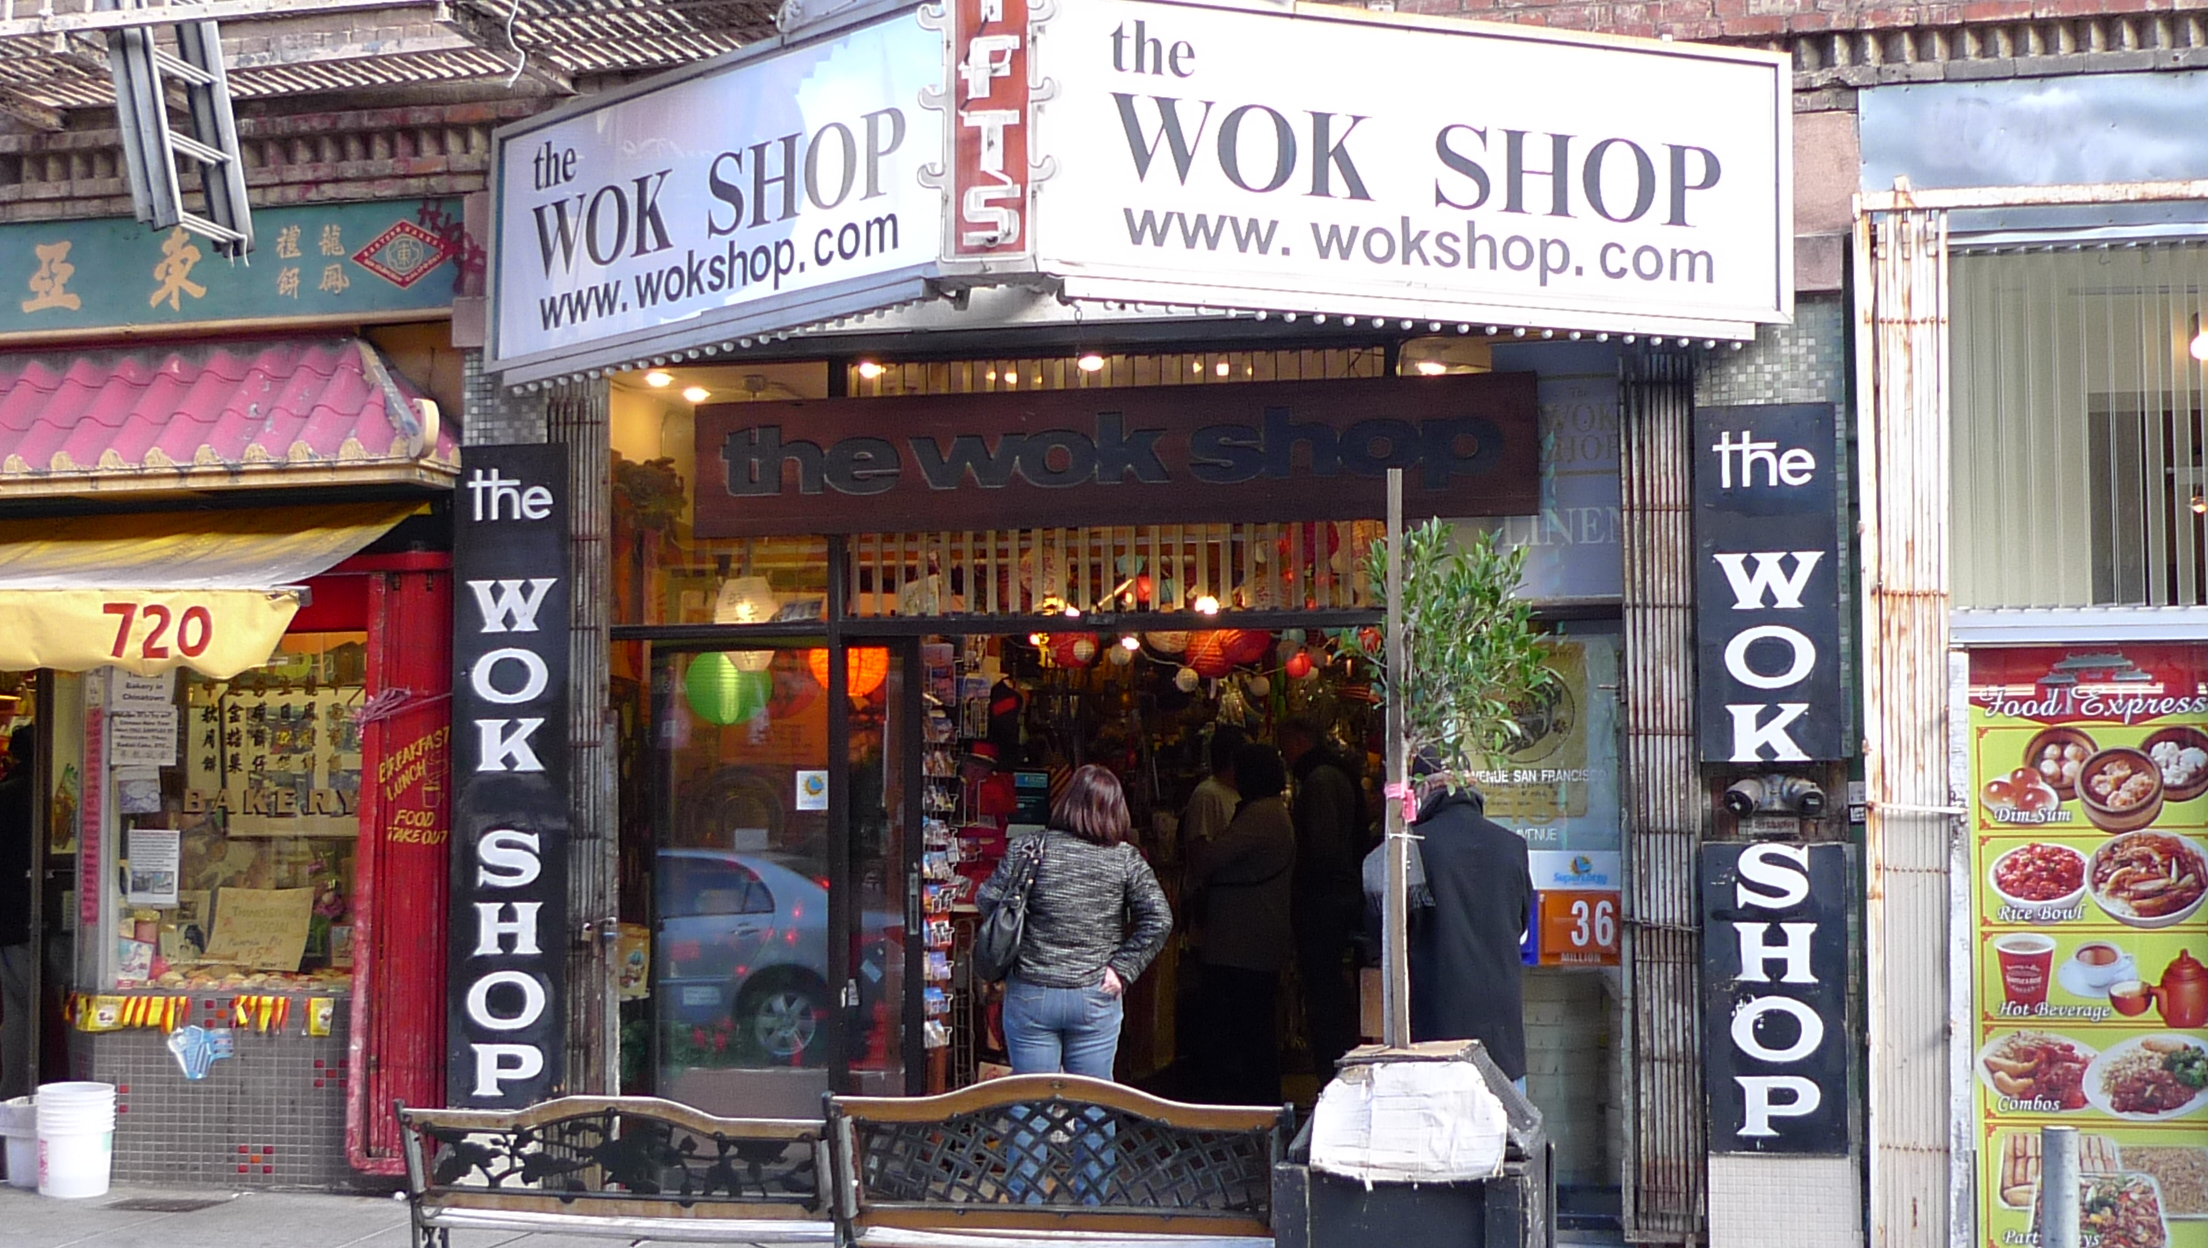 Genial Located In The Heart Of San Franciscou0027s Famous Chinatown, The Wok Shop Is A  Family Owned And Operated Business Specializing In Hard To Find Asian  Cooking ...